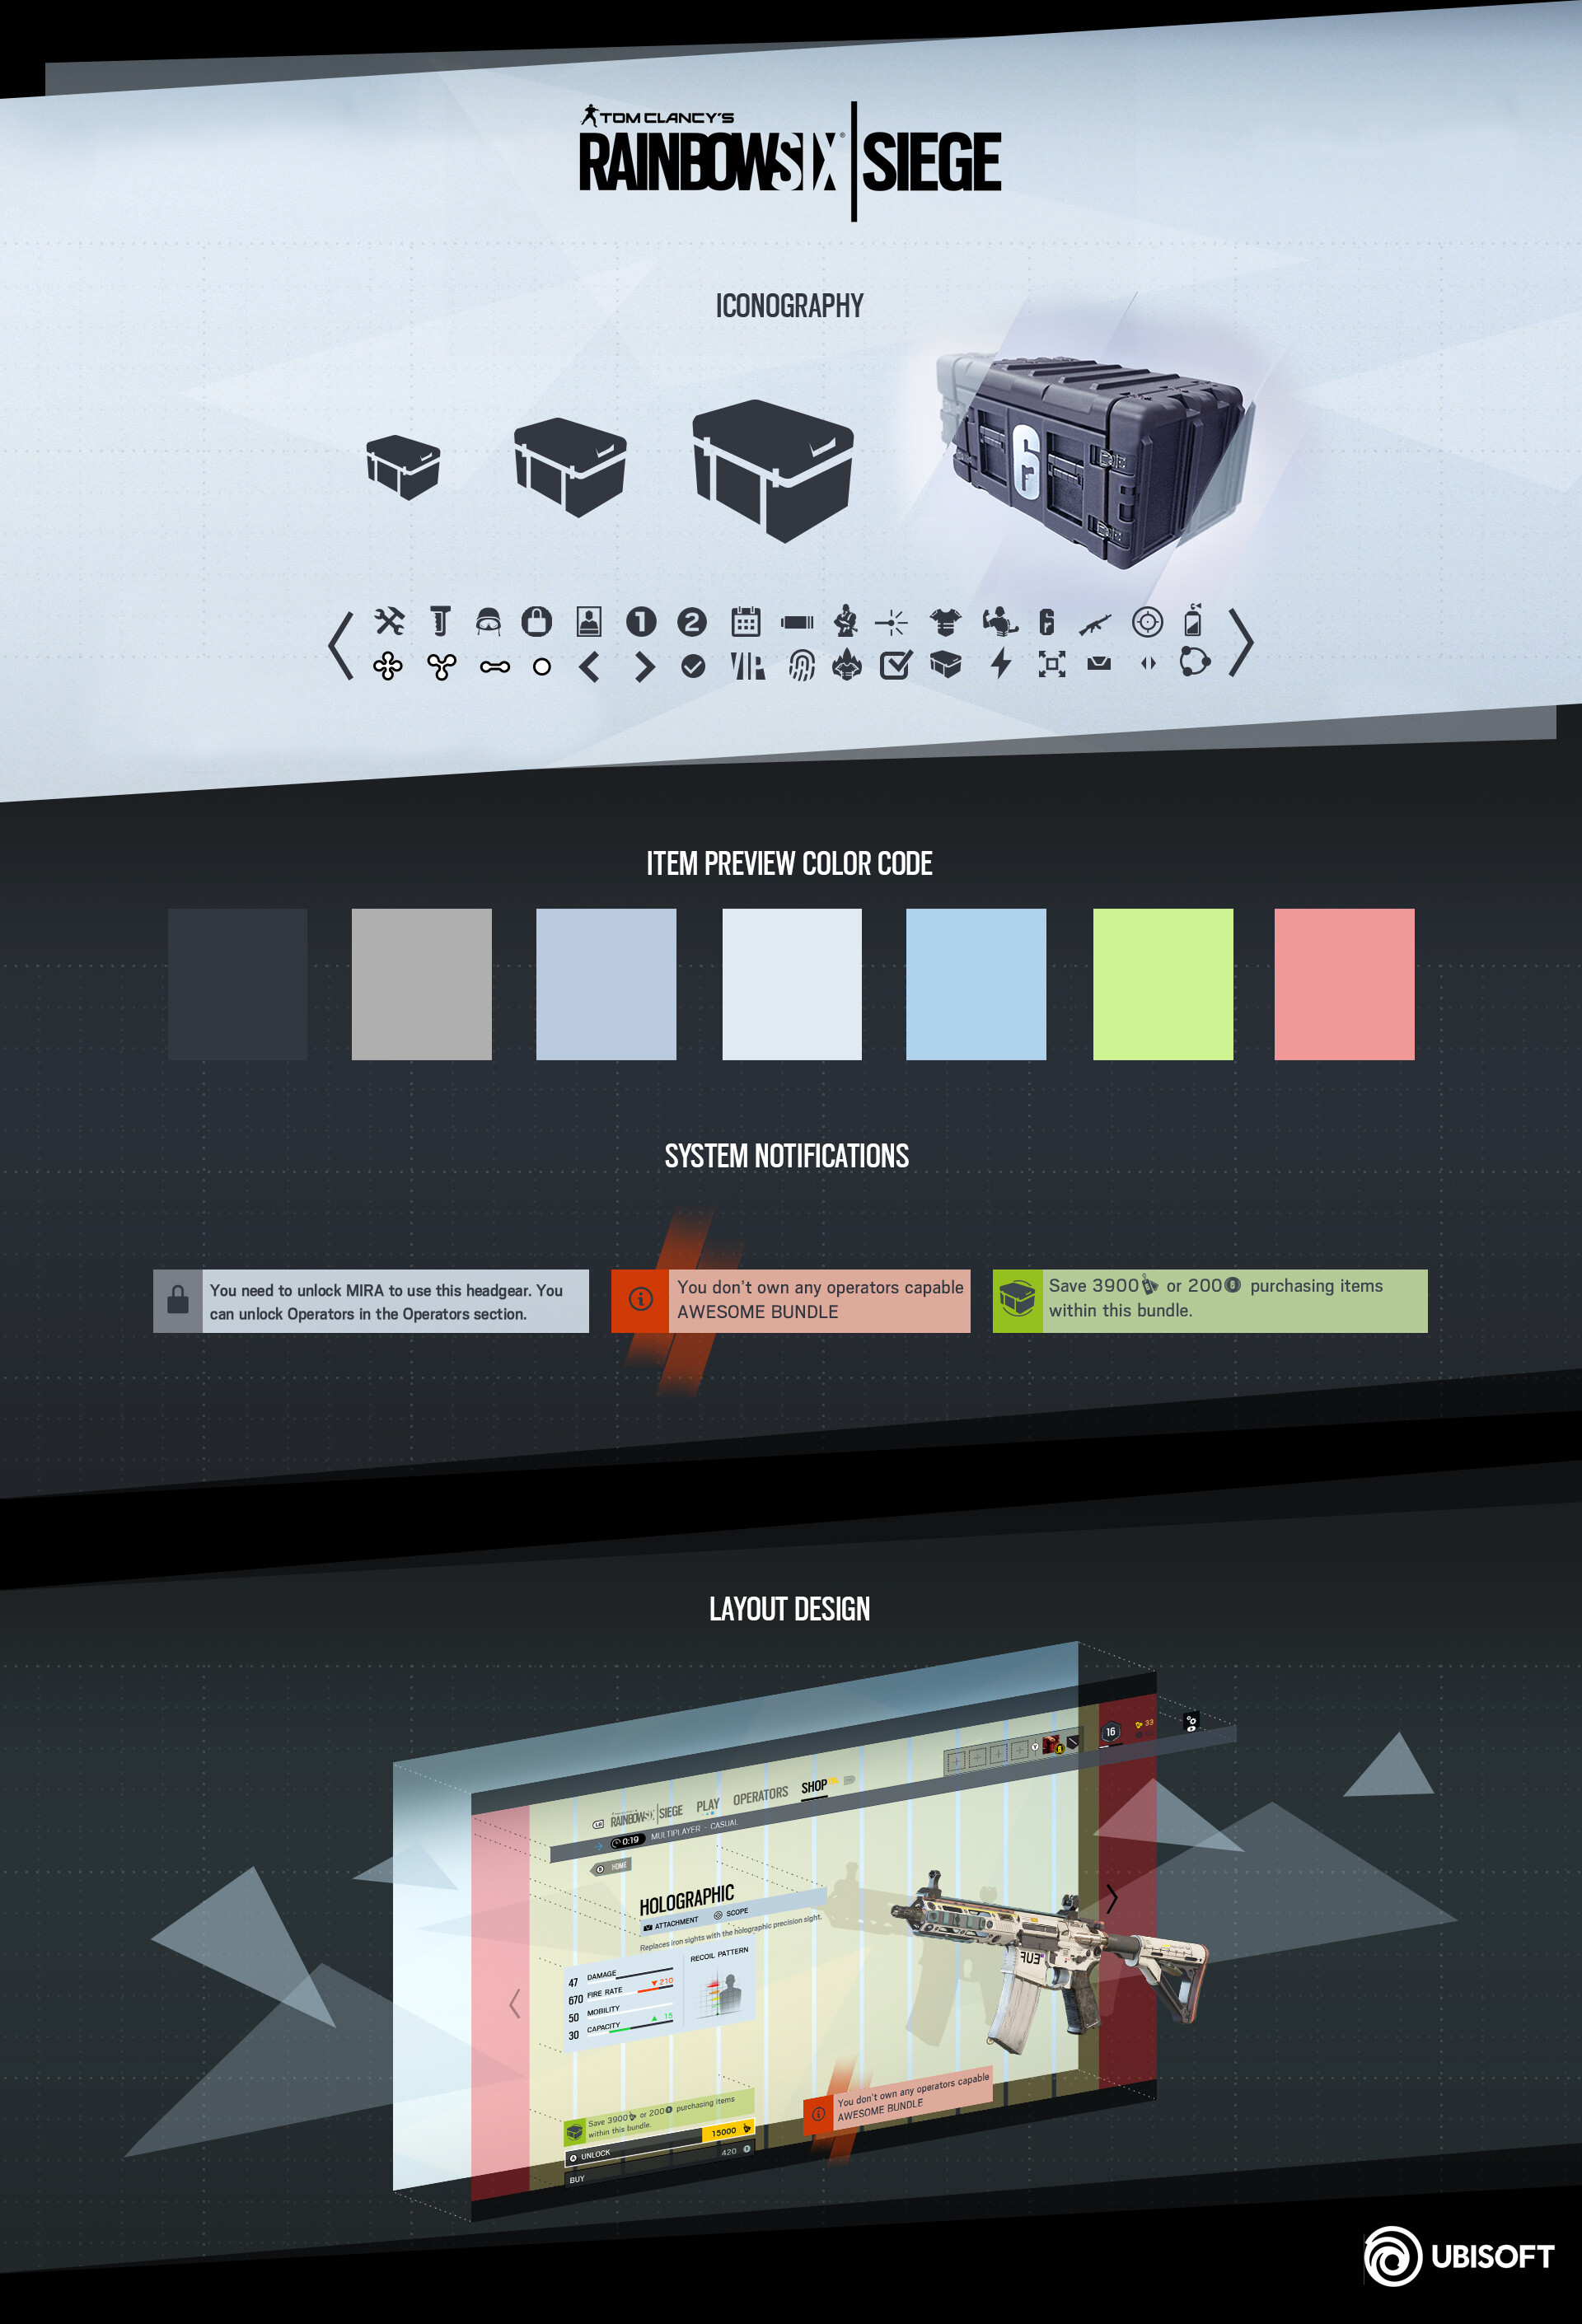 ArtStation - Tom Clancy's 'Rainbow Six Siege' - Y3S4 UI Design